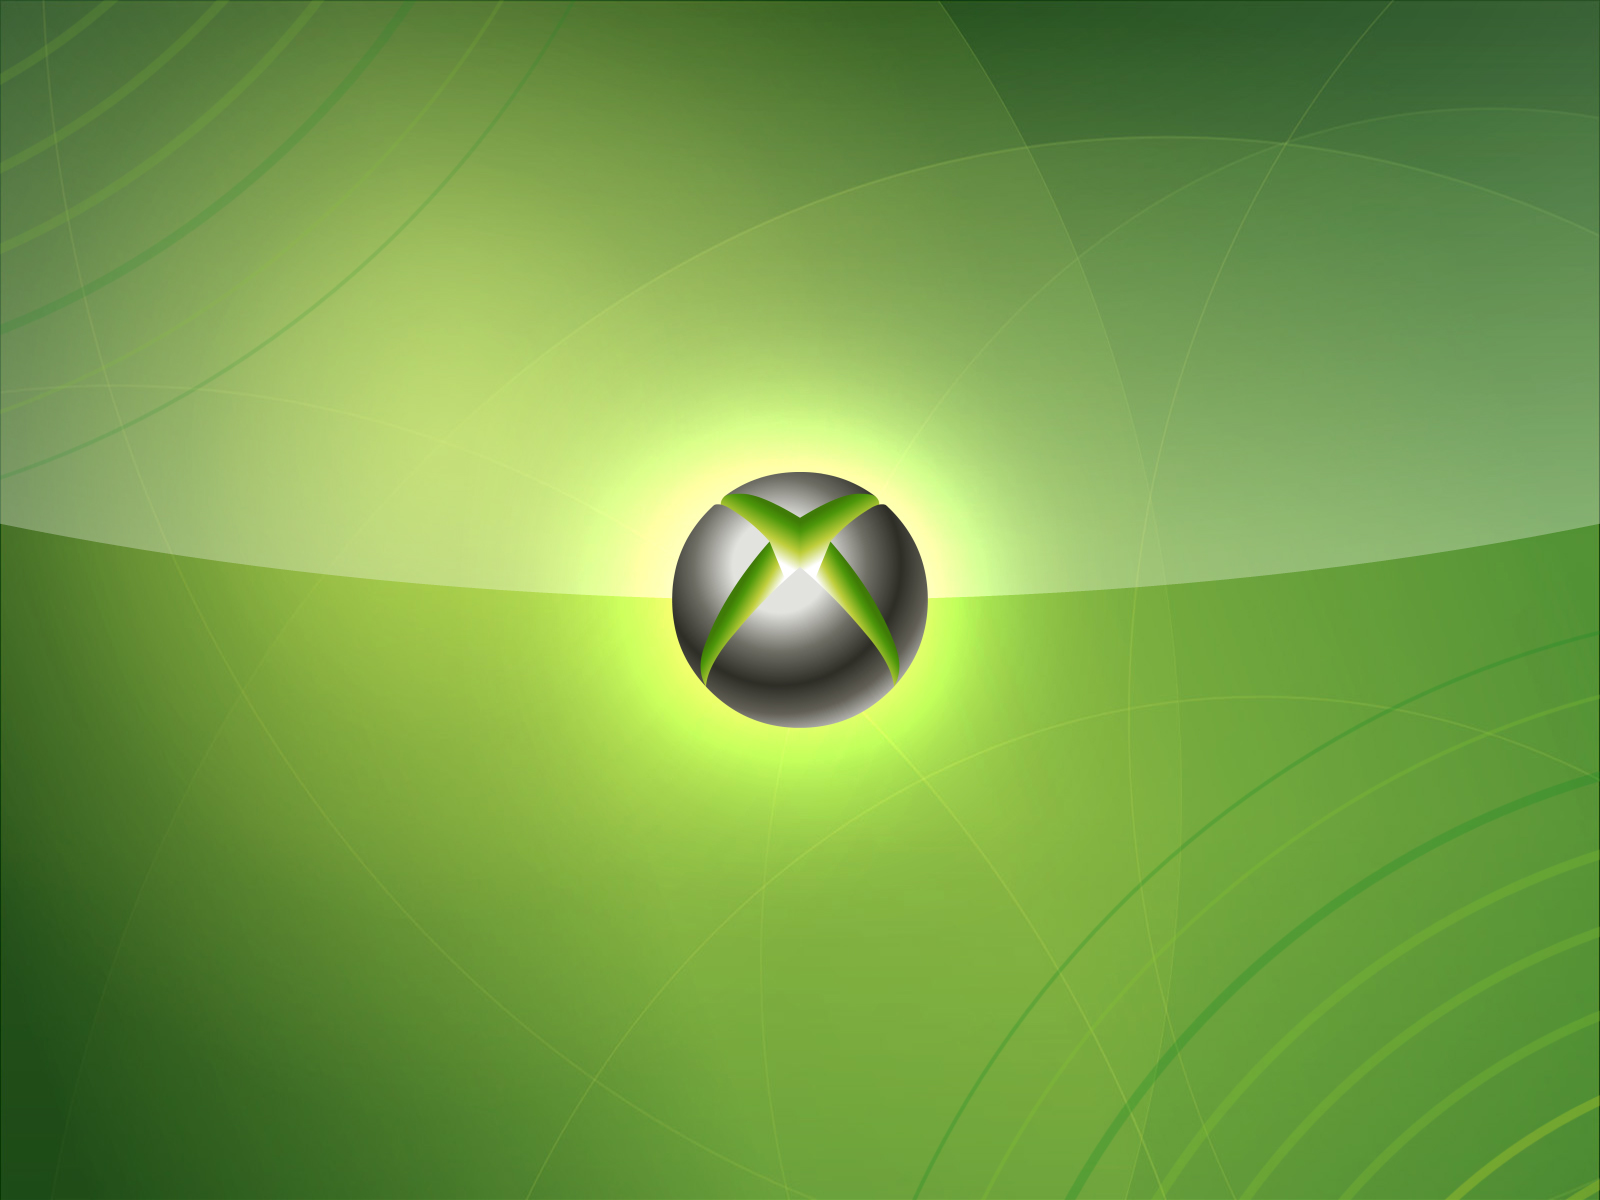 Wallpapers Box: Xbox360 Green And Black HD Wallpapers